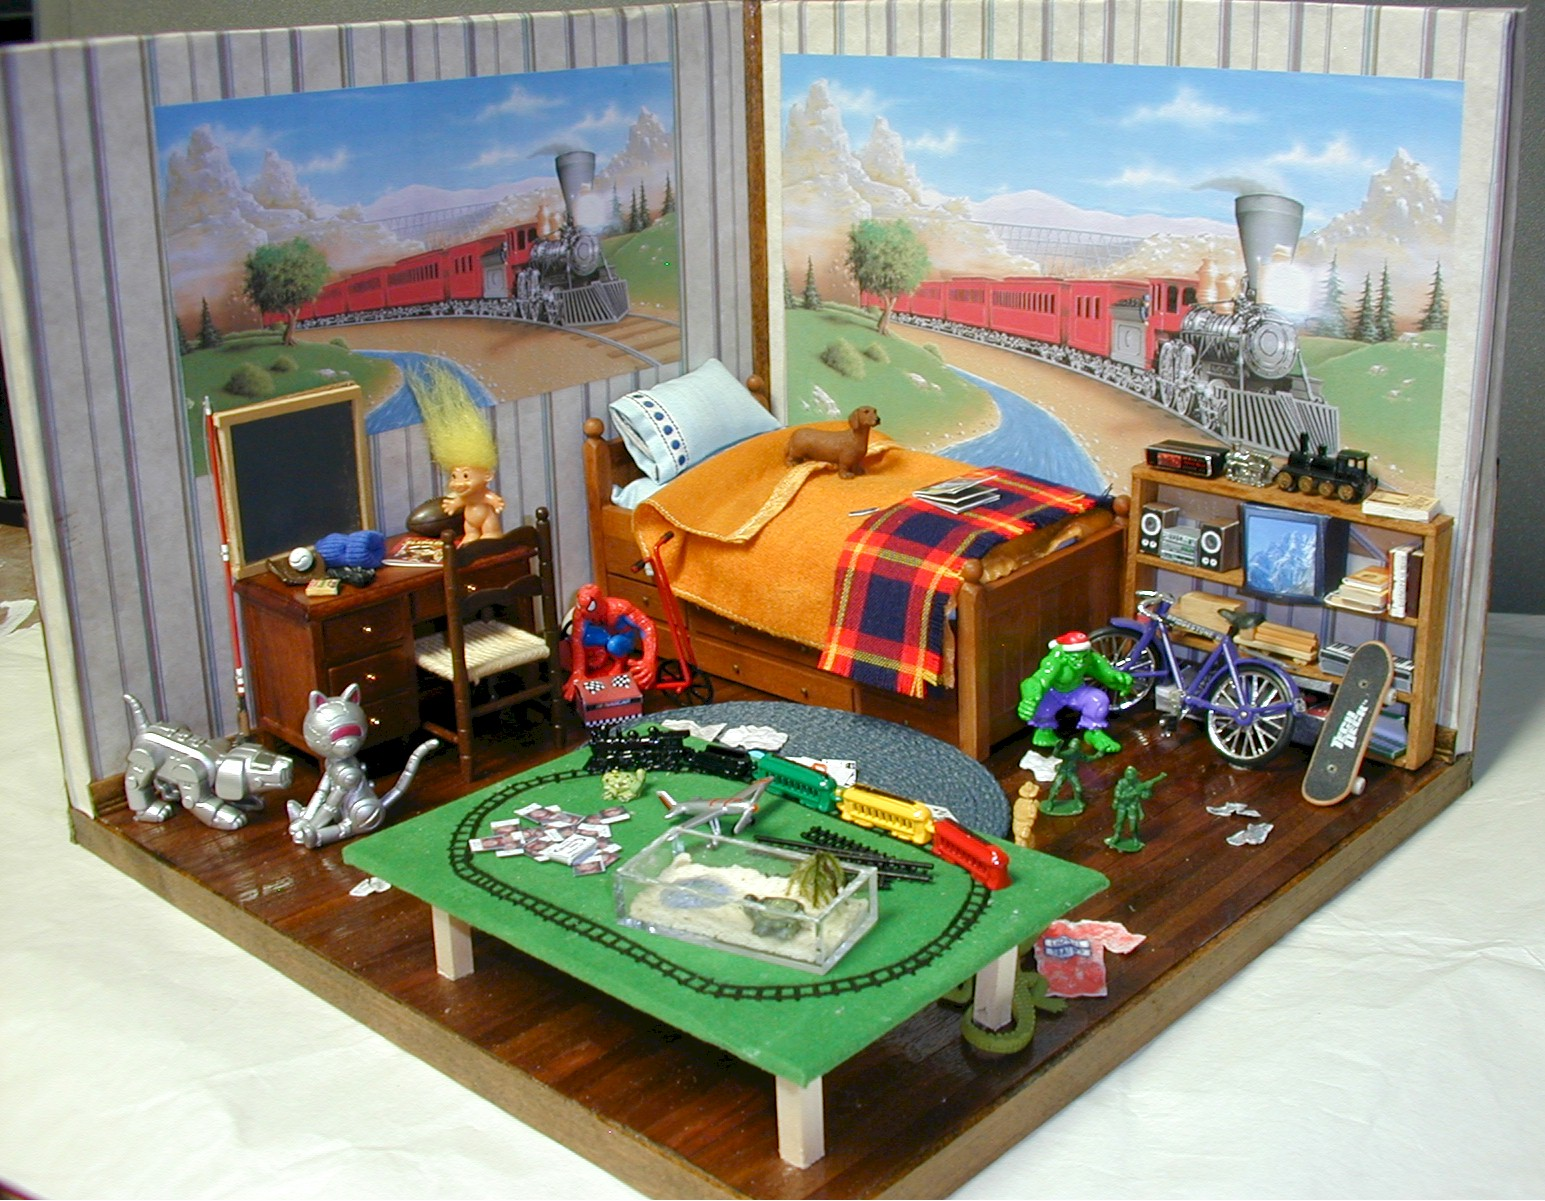 Train For Room Decoration For Kids Room : Like Architecture & Interior Design? Follow Us...